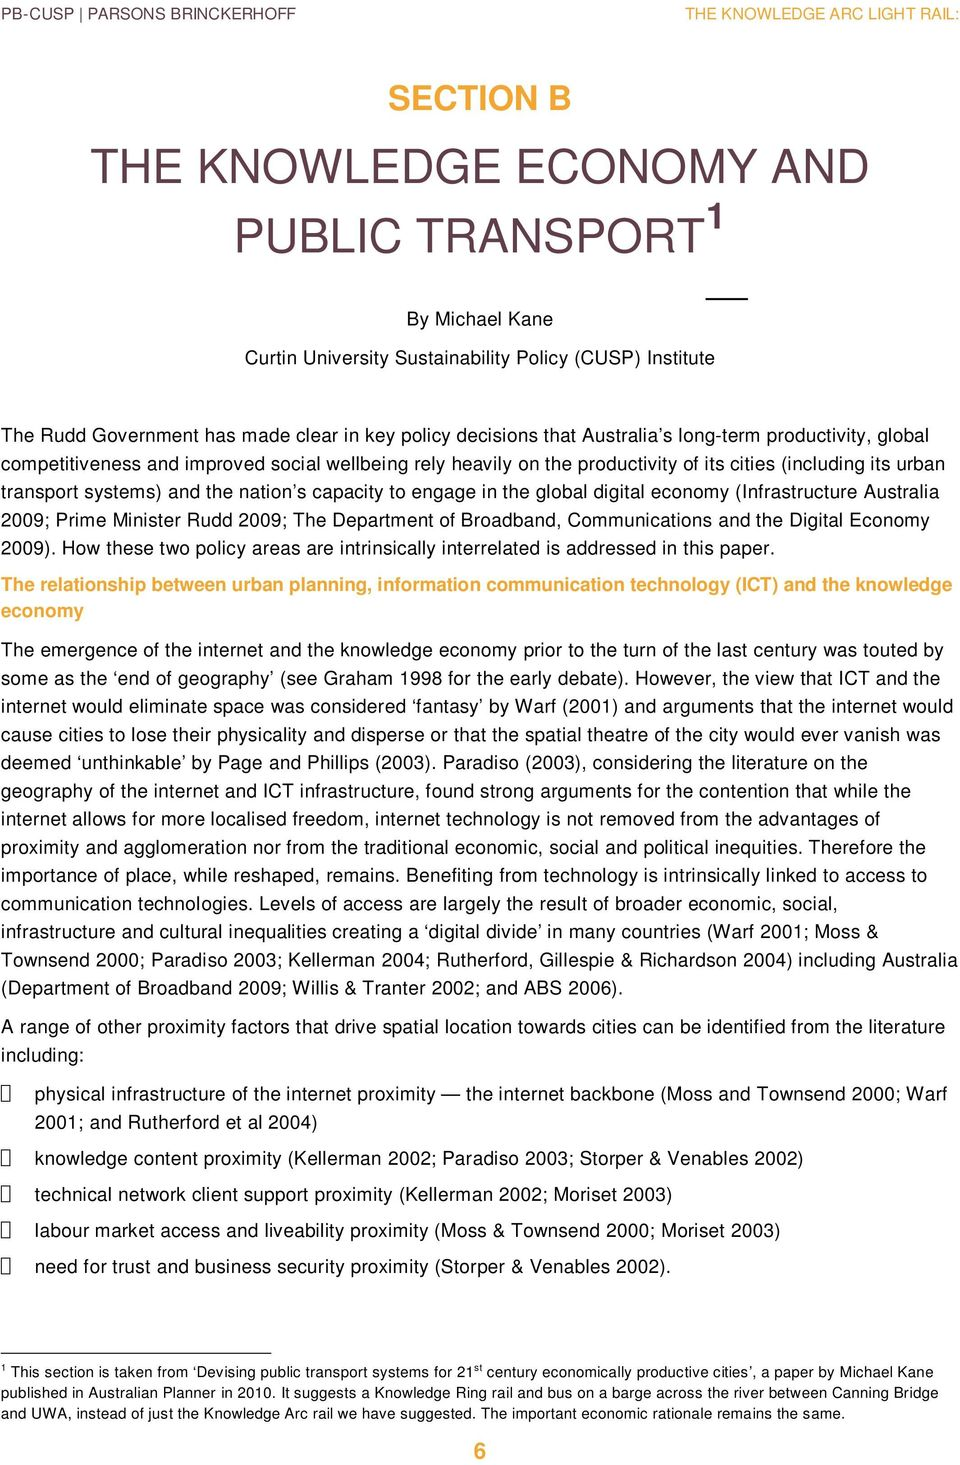 capacity to engage in the global digital economy (Infrastructure Australia 2009; Prime Minister Rudd 2009; The Department of Broadband, Communications and the Digital Economy 2009).